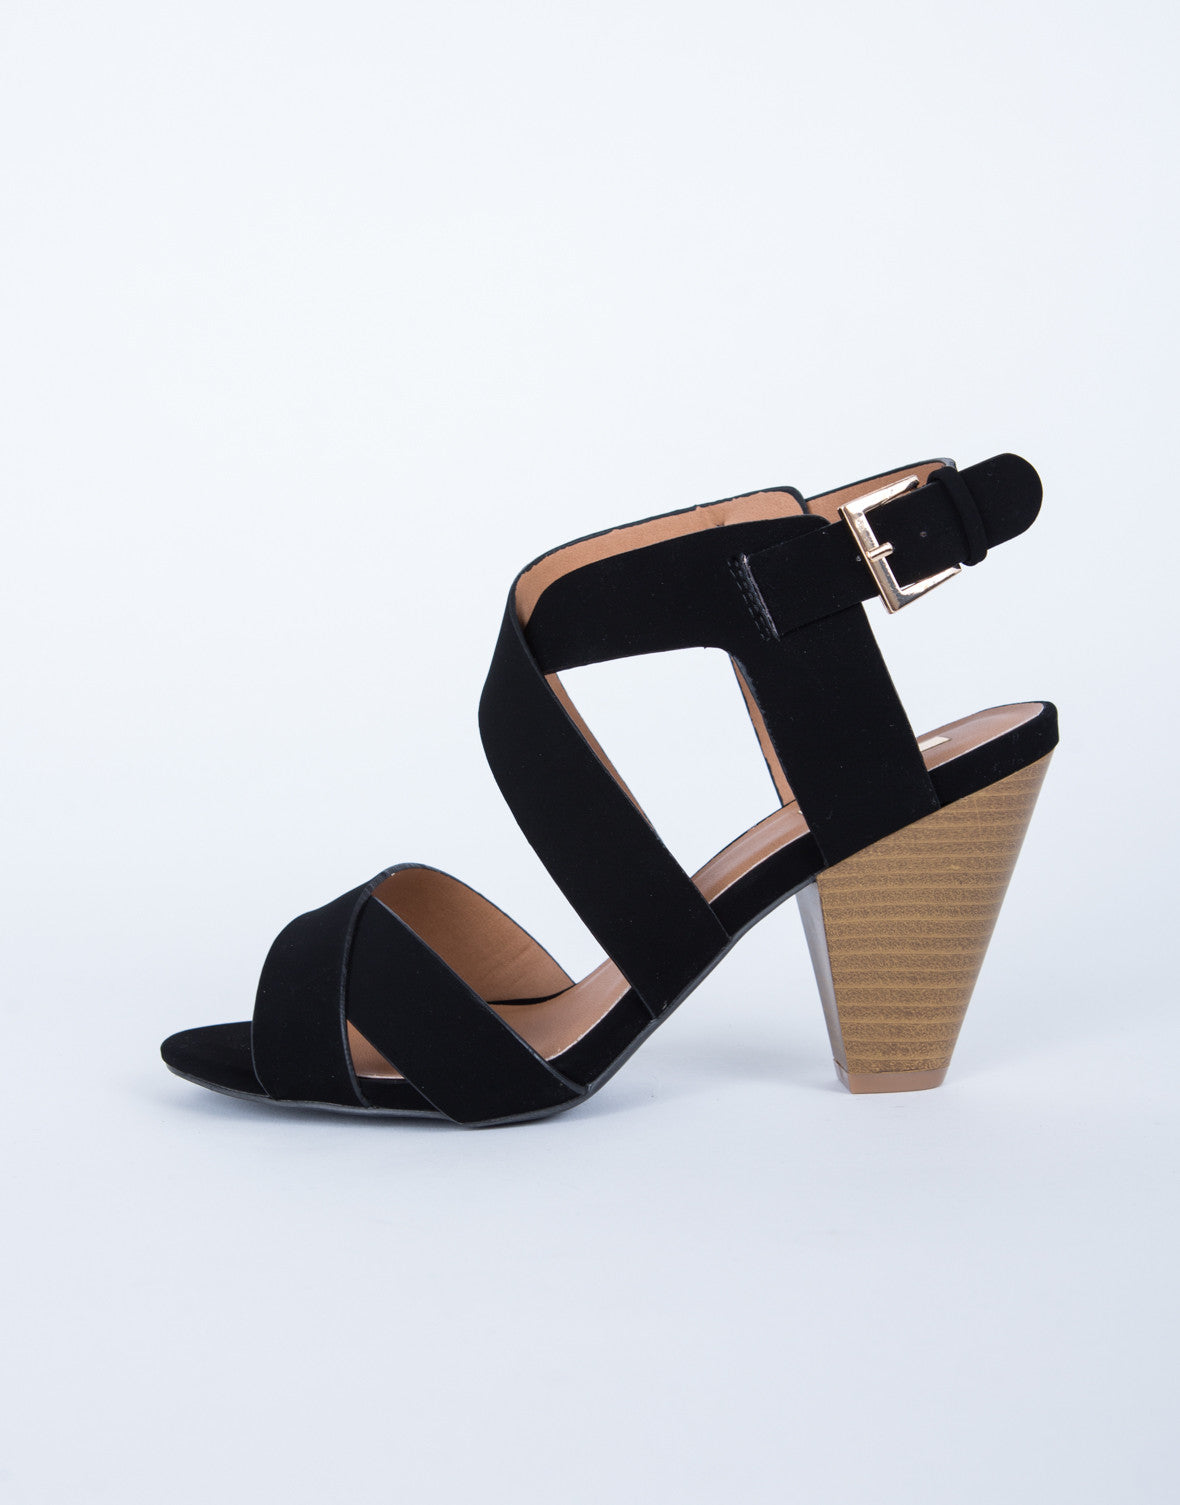 Black sandals with heels -  Cross Banded Sandals